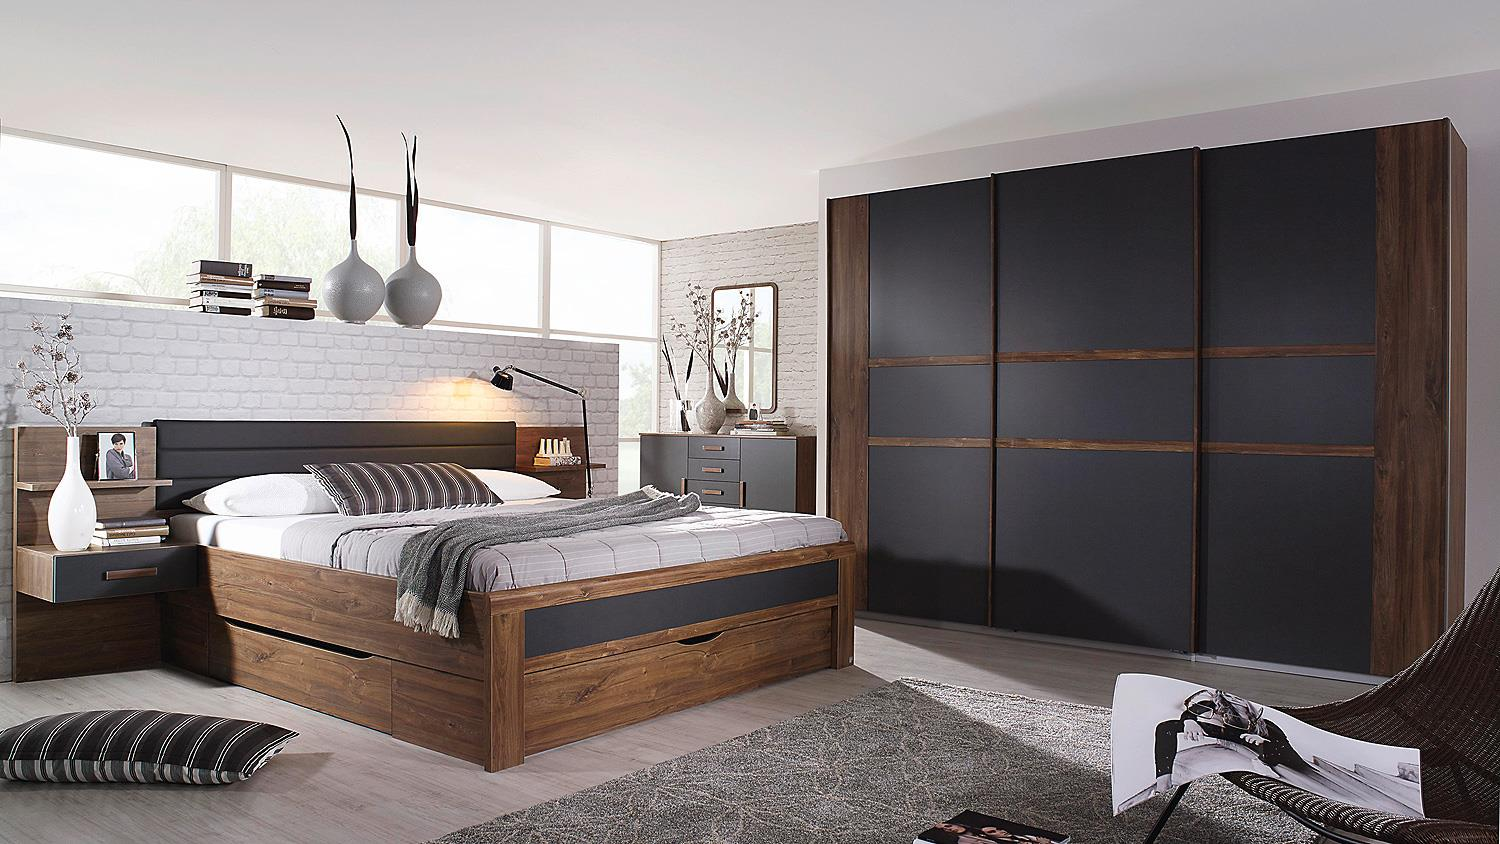 schlafzimmer set 3 bernau eiche stirling grau und basalt. Black Bedroom Furniture Sets. Home Design Ideas